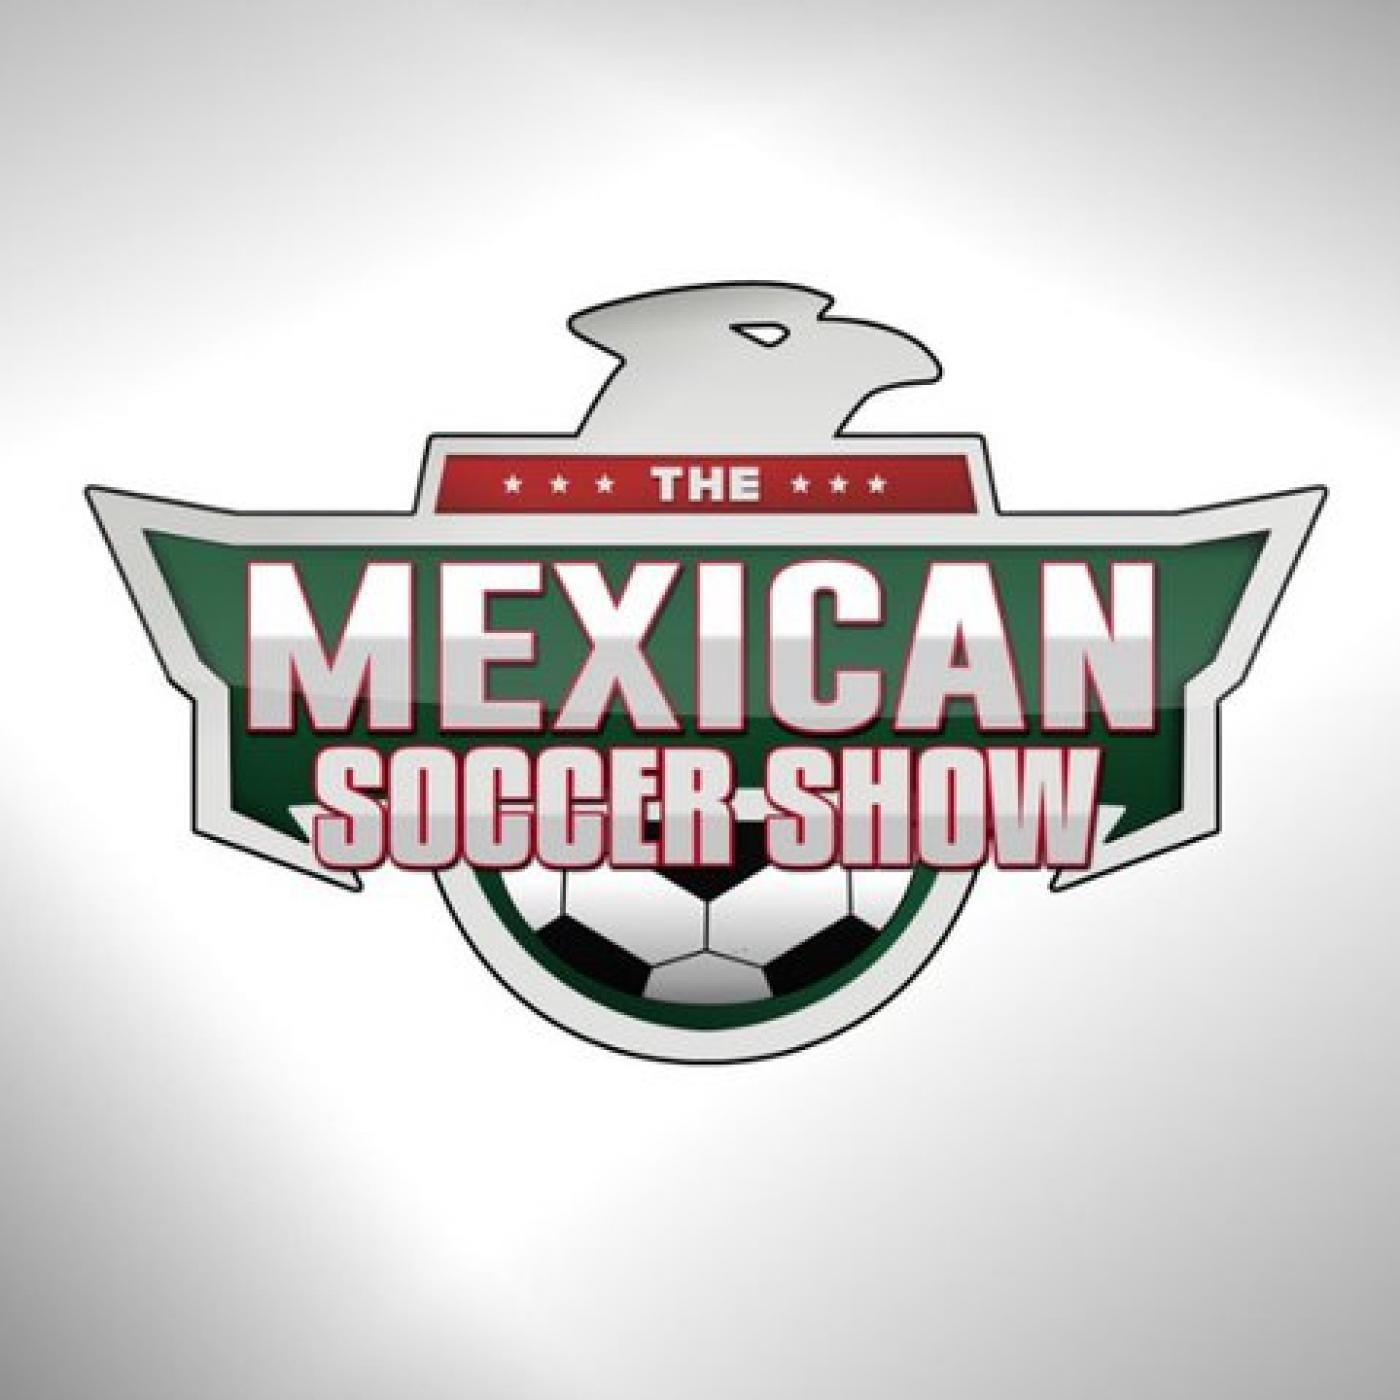 <![CDATA[The Mexican Soccer Show]]>